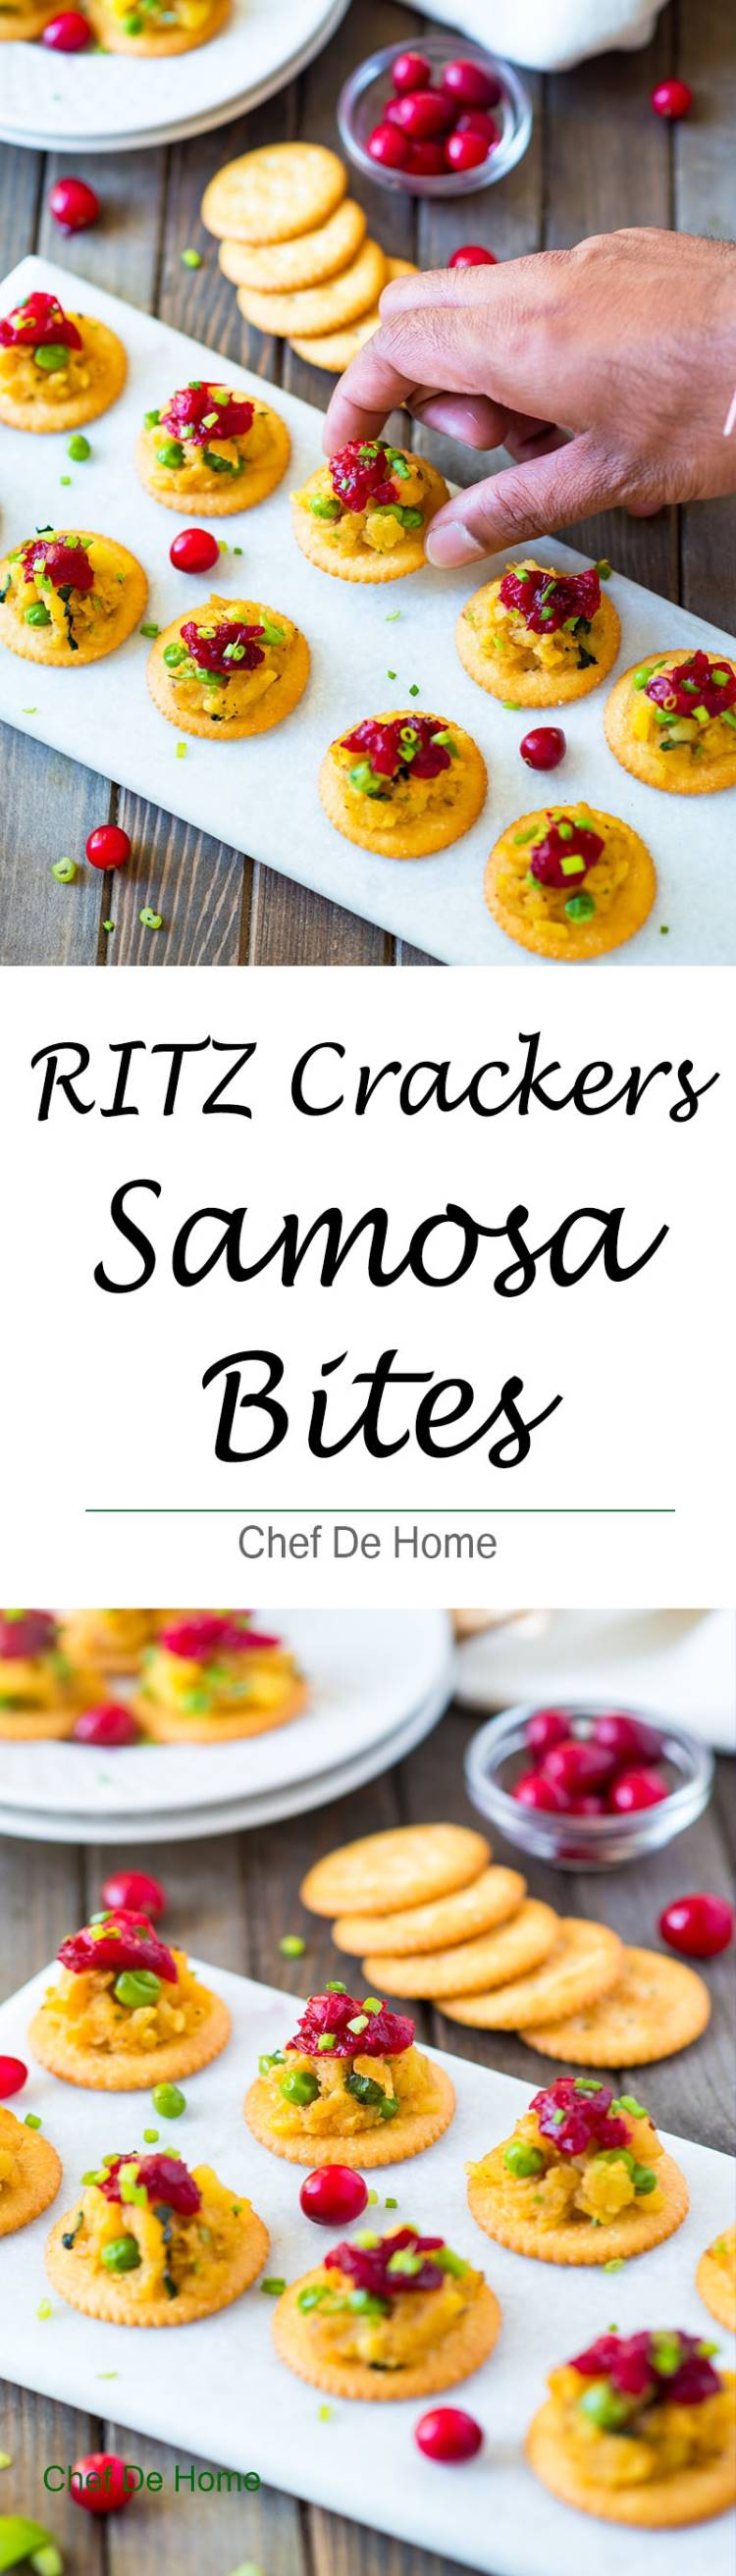 Samosa filling and cranberry chutney topped on Ritz Crackers for easy party appetizer | chefdehome.com